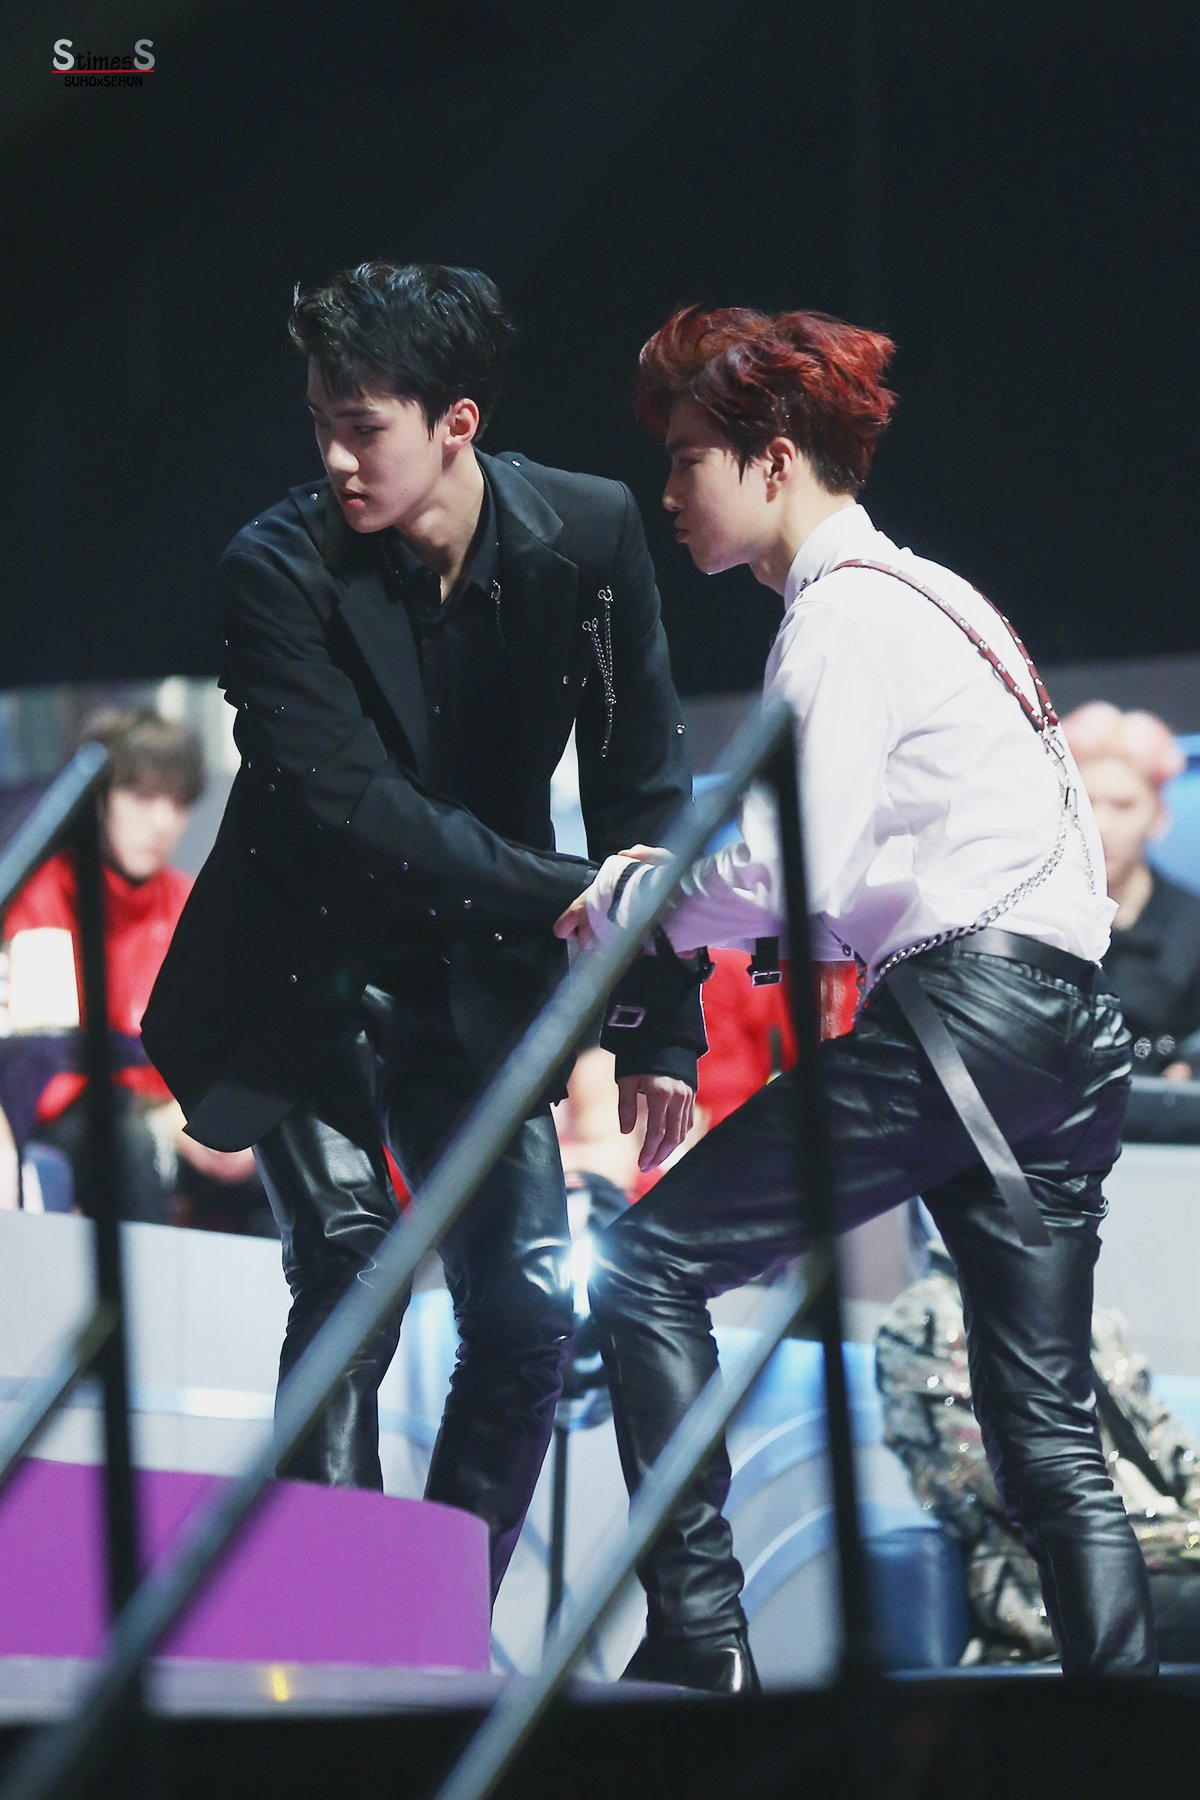 Suho advised Sehun to sit down while he makes the offer to sit on the edge of the long couch.